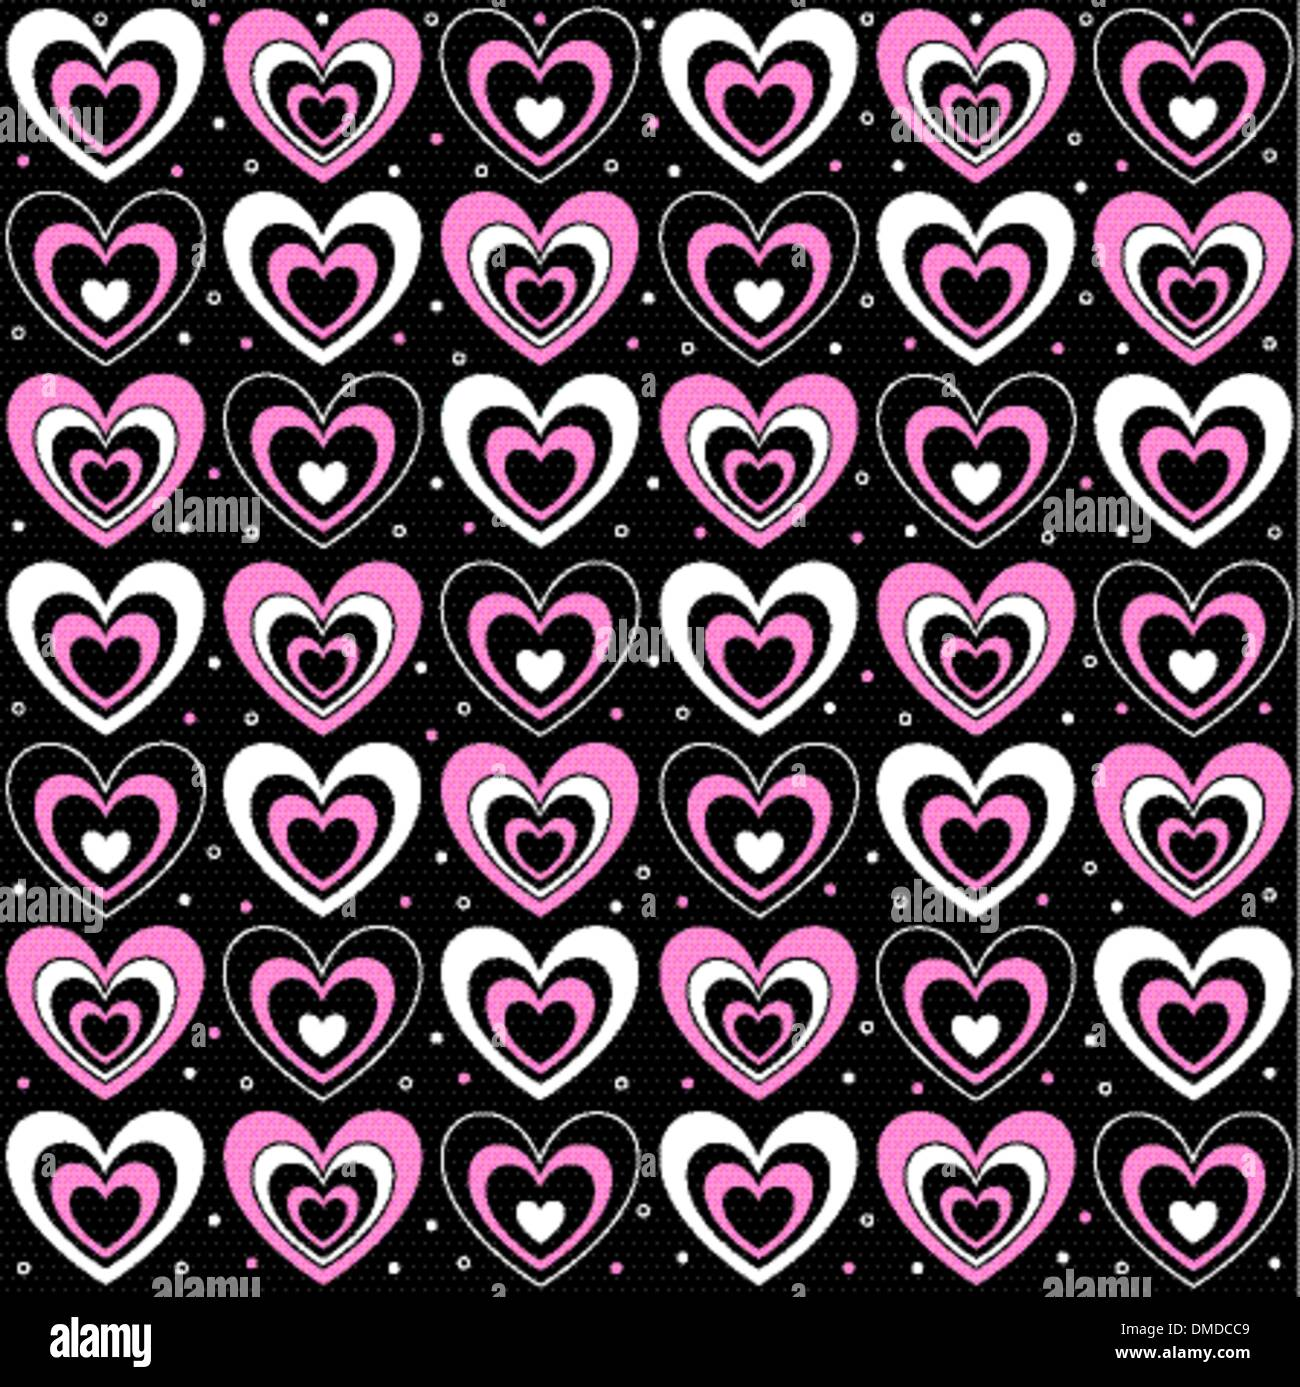 Hearts On A Black Background Stock Vector Art Illustration